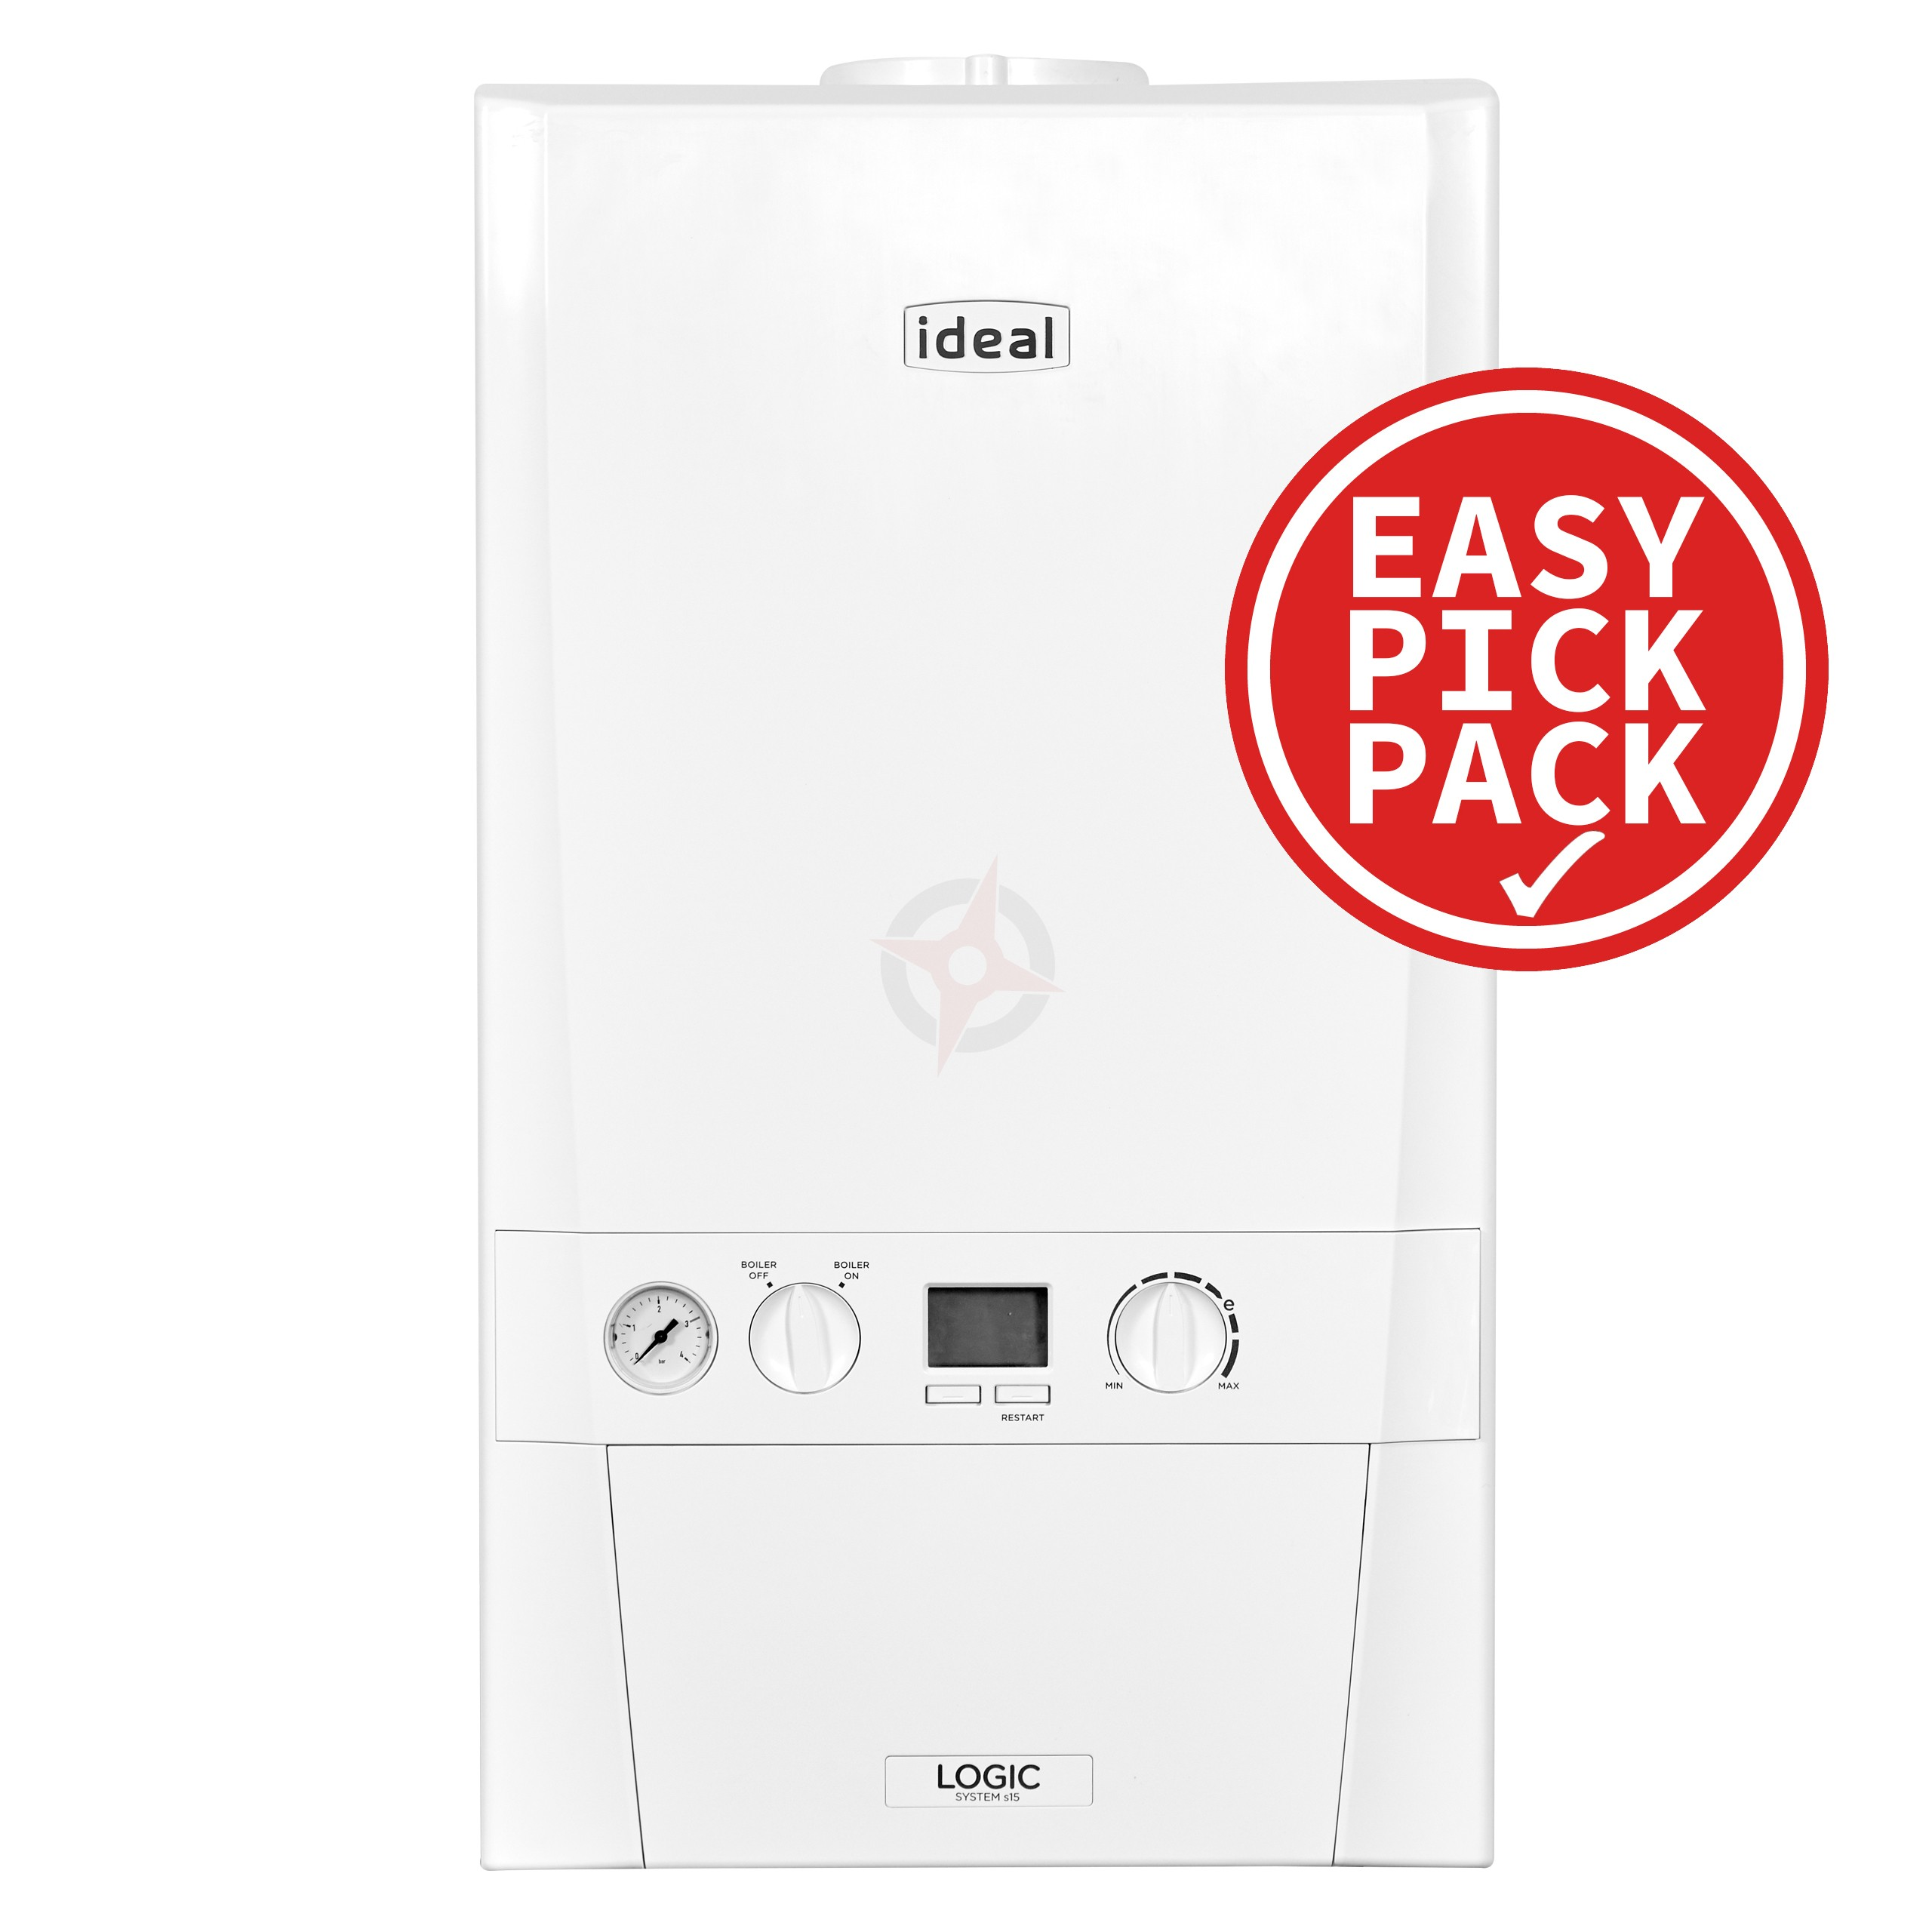 Ideal Logic 24 (ErP) System Boiler Easy Pick Pack